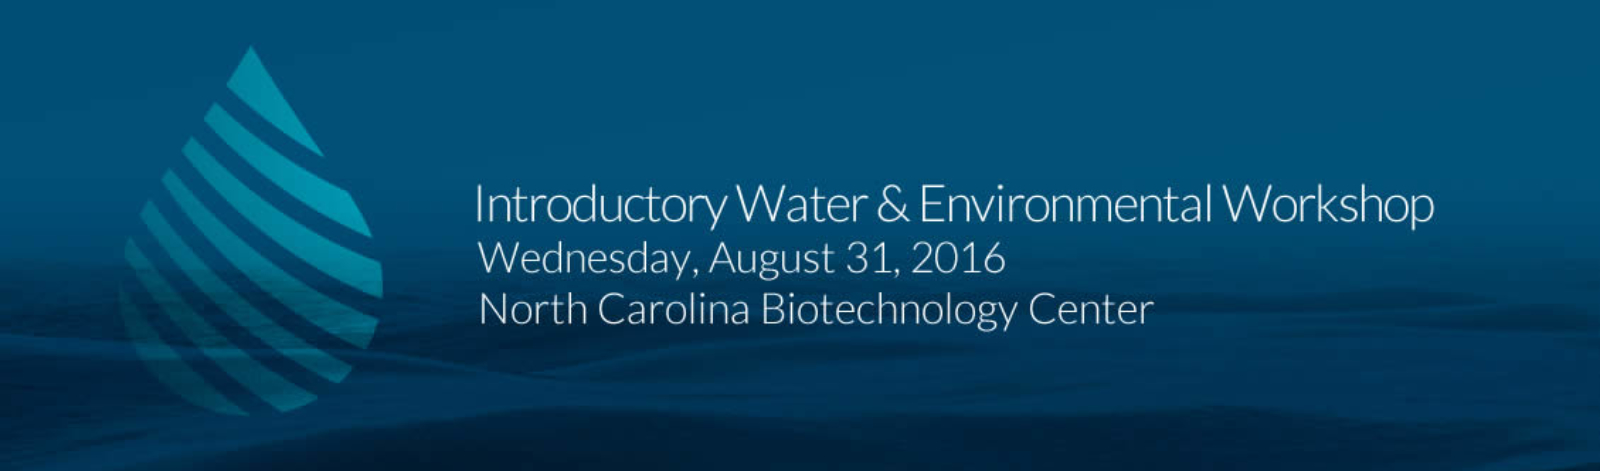 Introductory water and environmental workshop